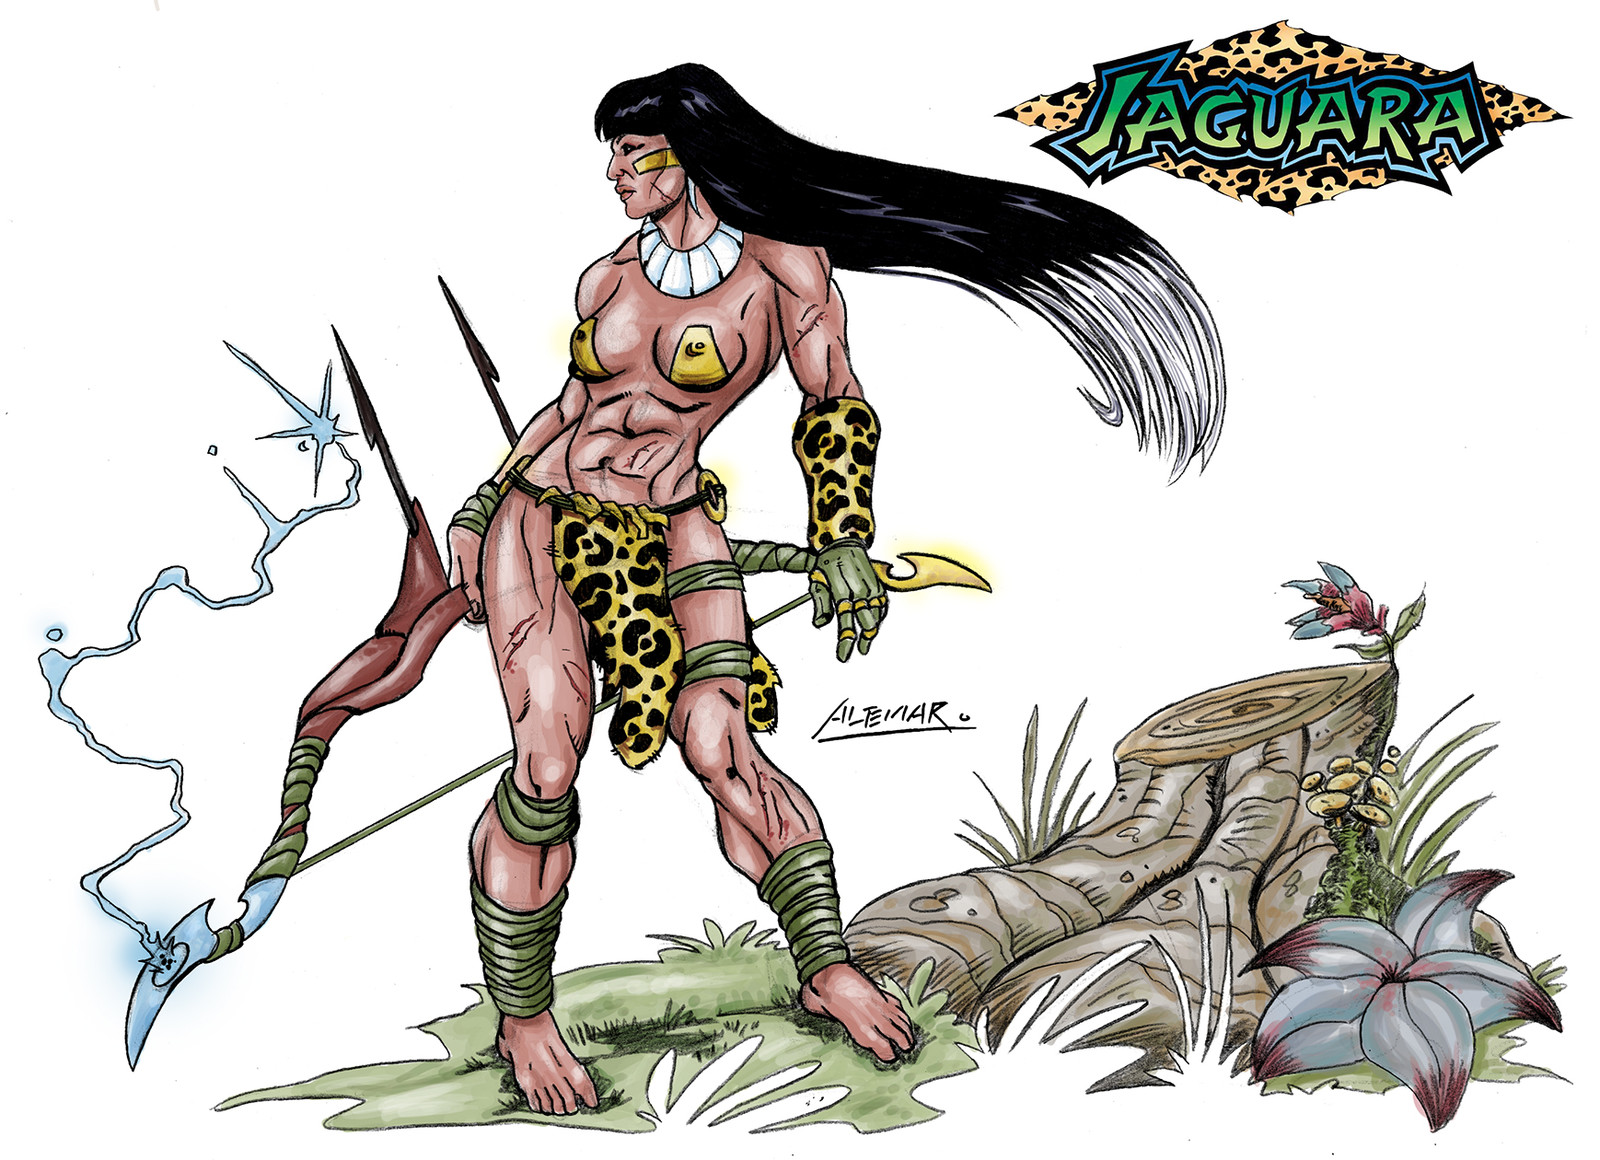 Jaguara - Done to combat with his powerfull bow